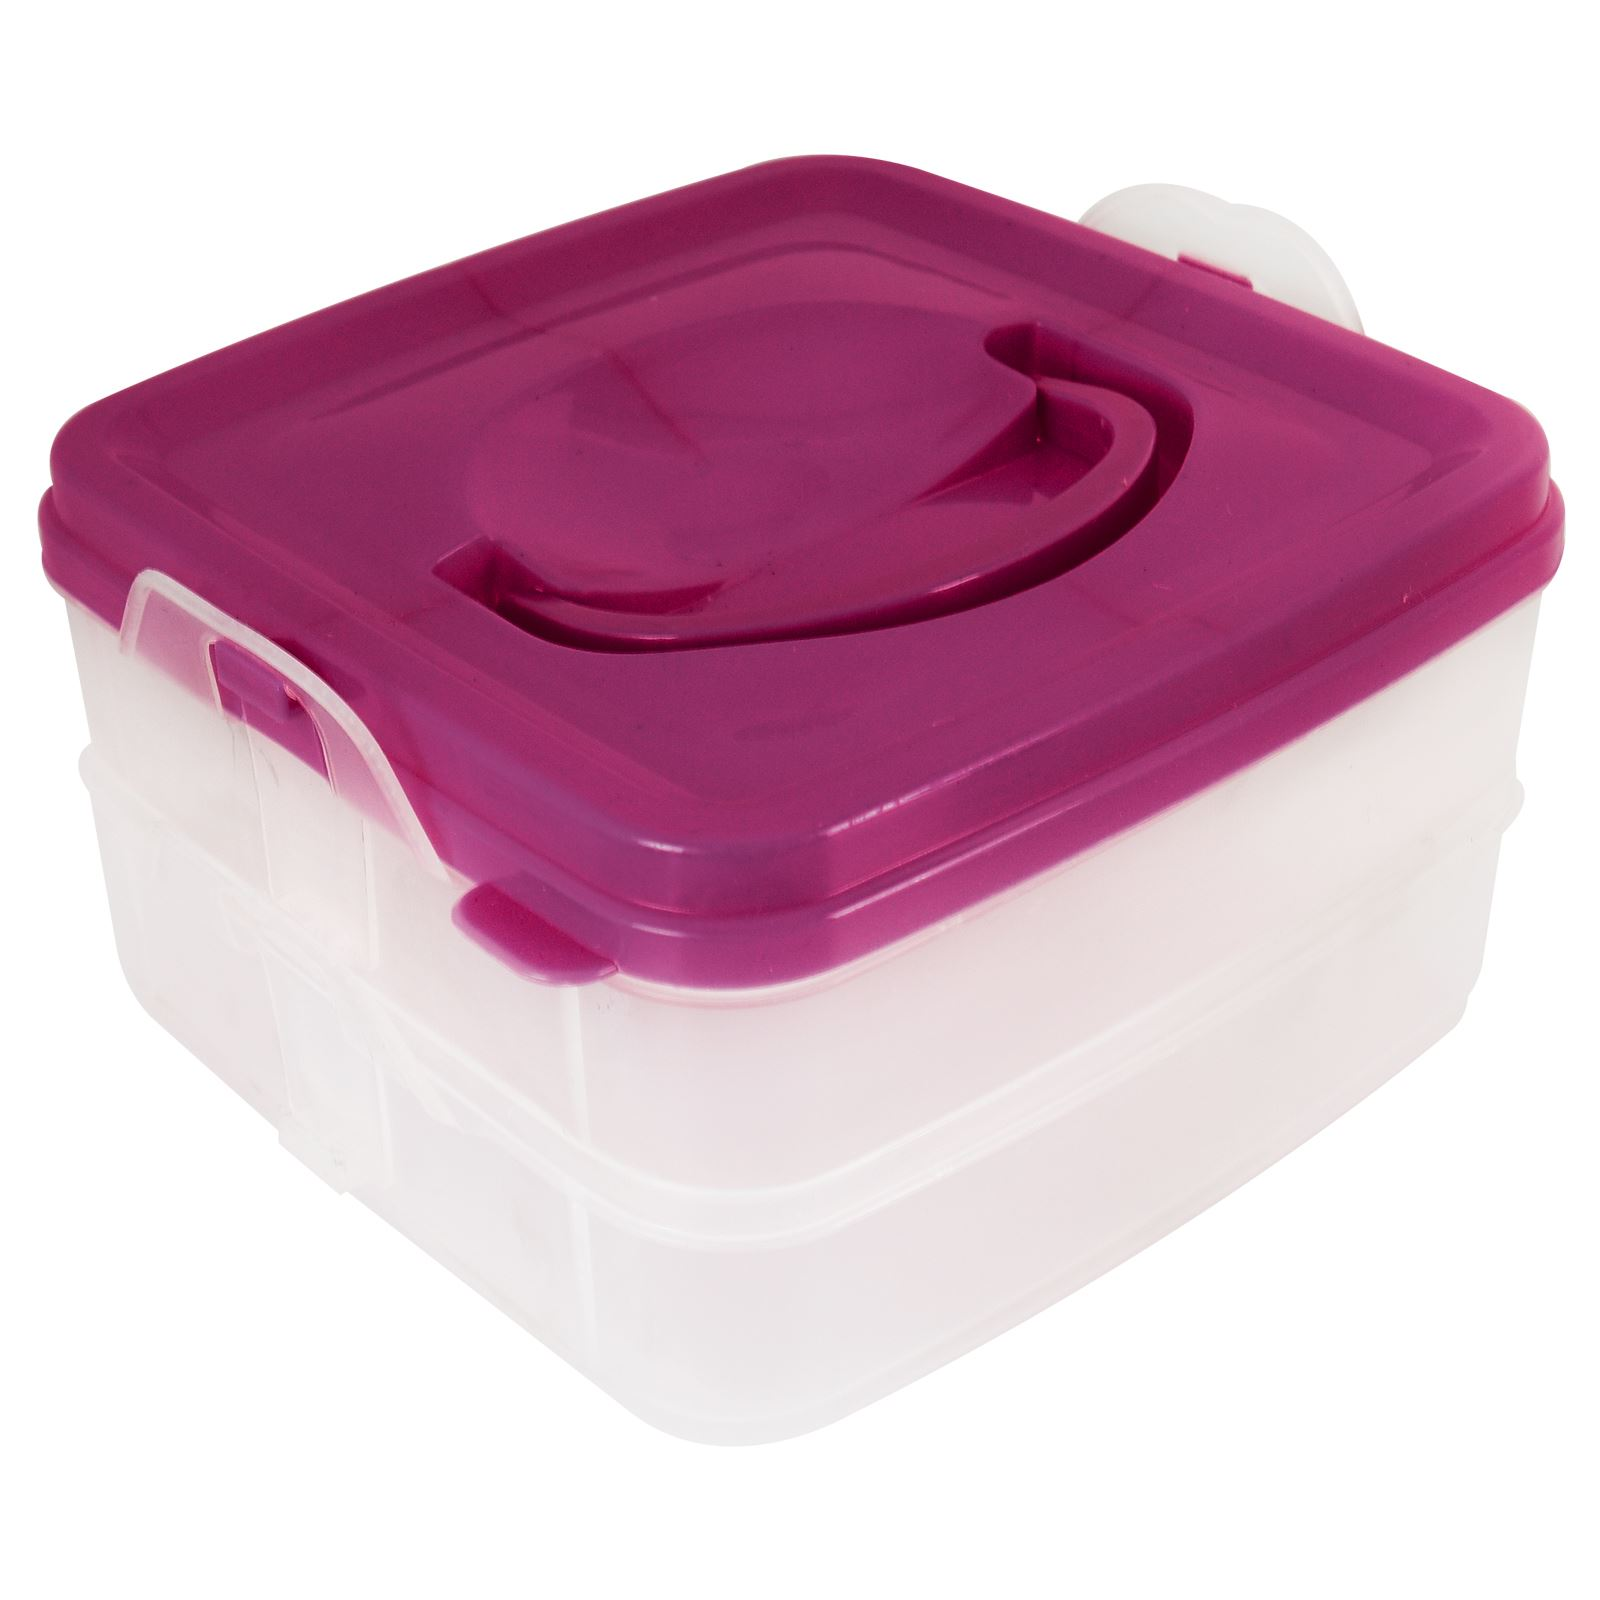 2 Tier Clip Lock Lunch Box Dinner Set Stack able Fresh Food Storage